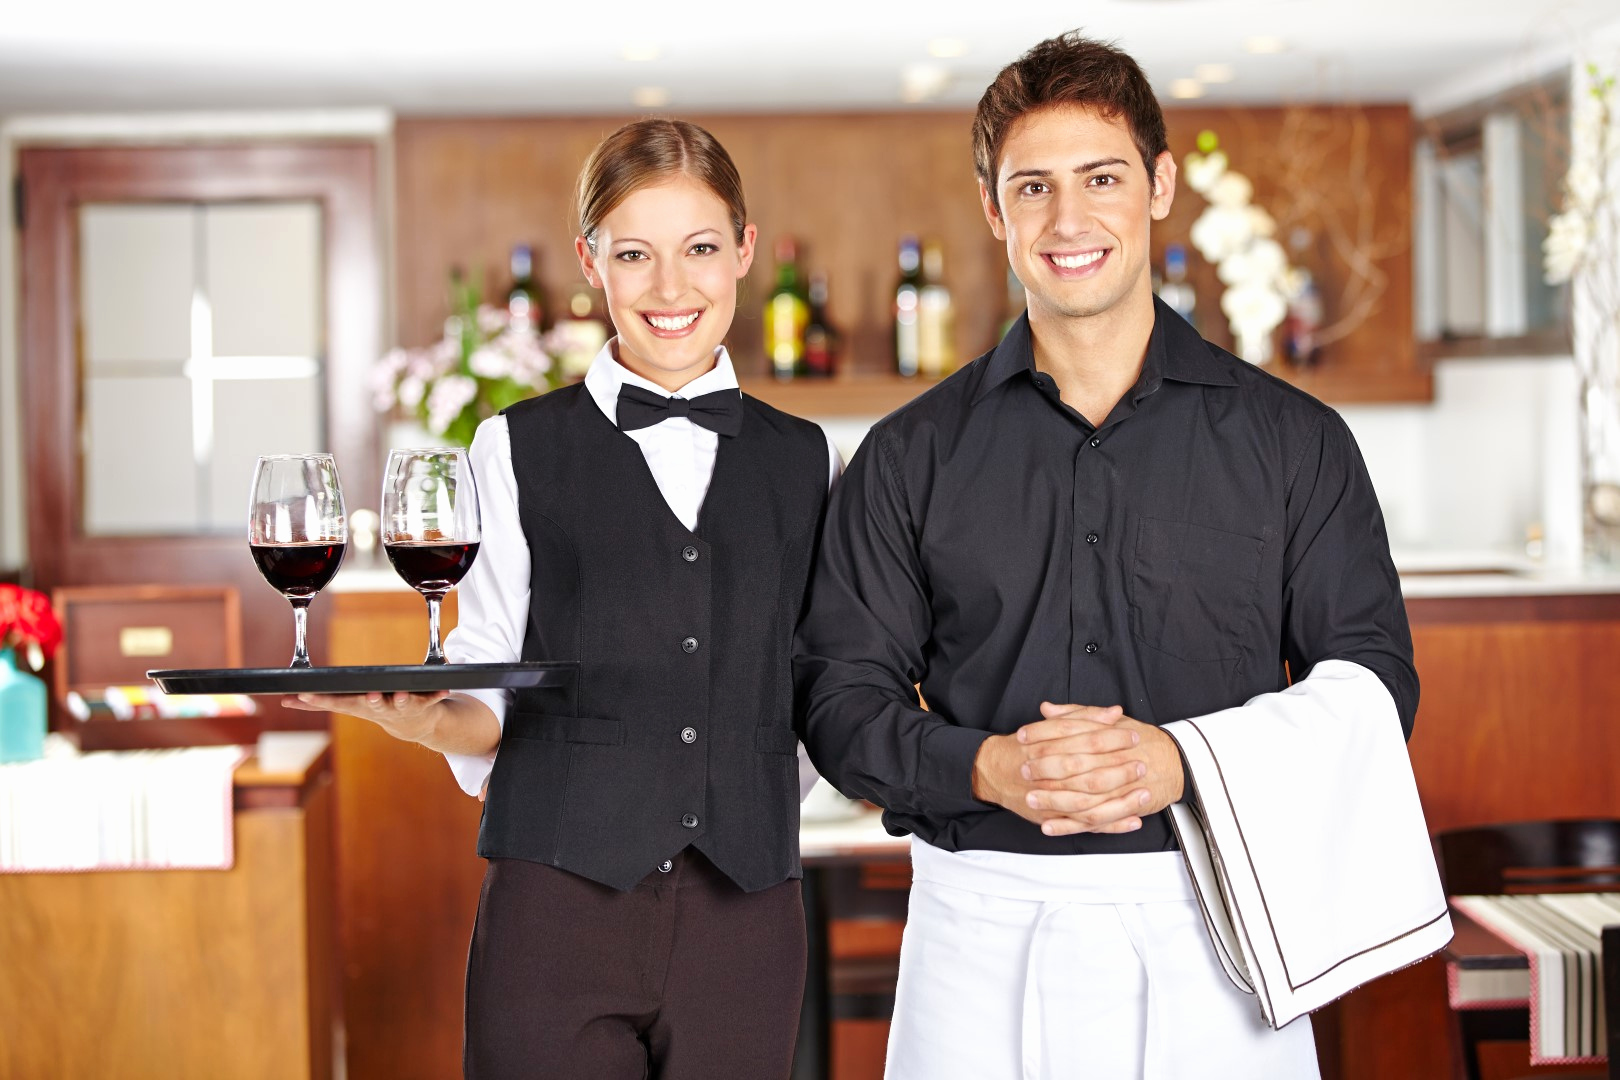 Restaurant Employee Hand Book Luxury Staying Current What Restaurant Owners Should Include In